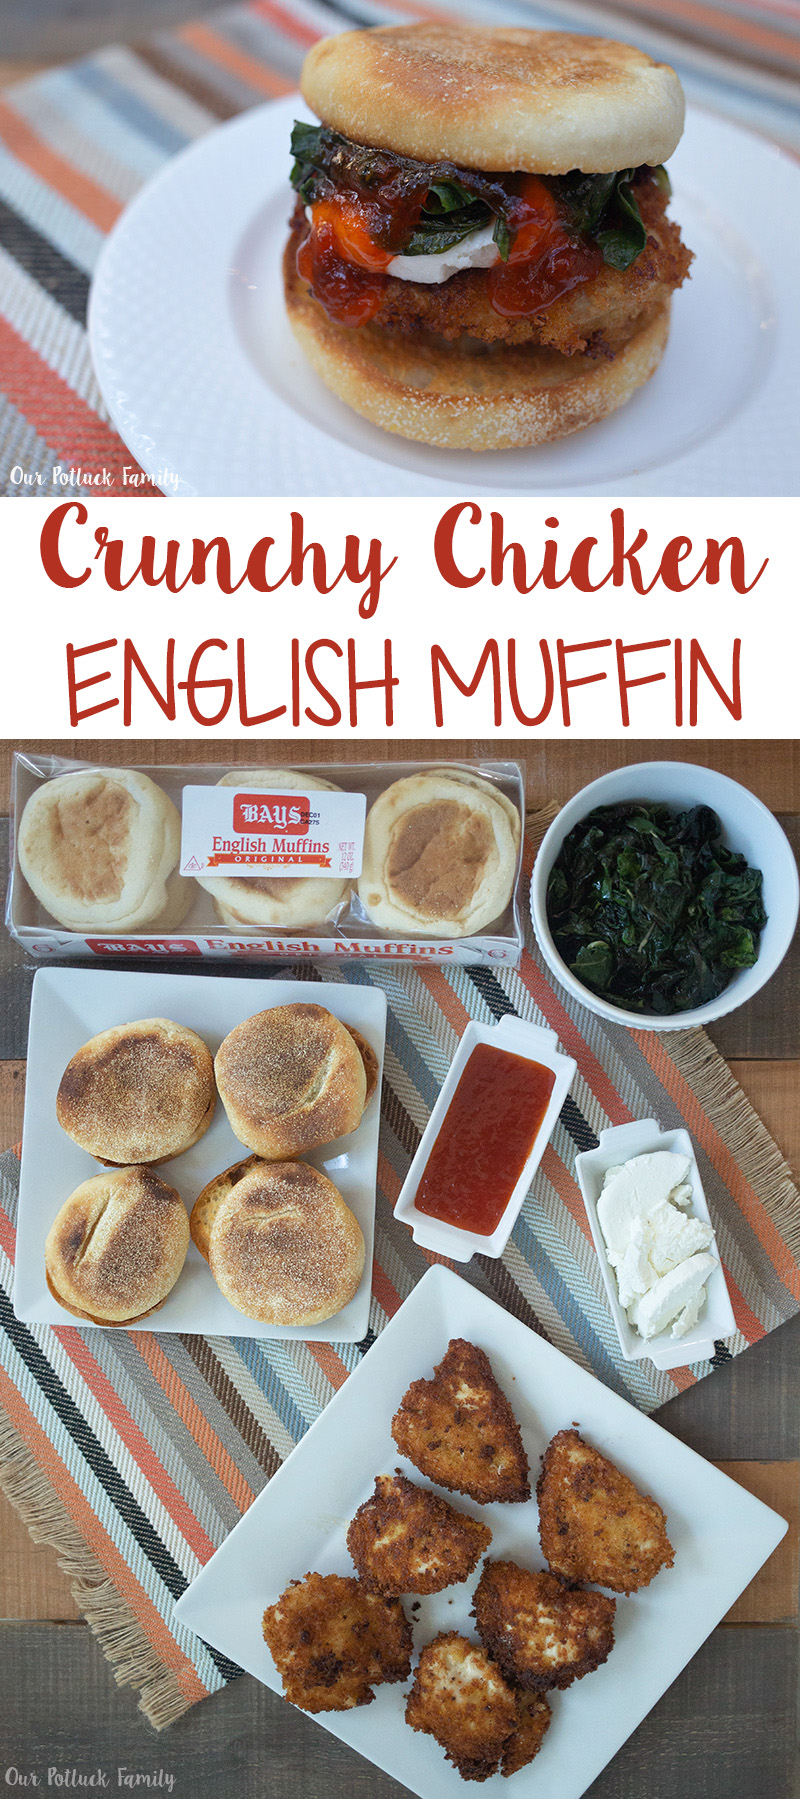 Crunchy Chicken English Muffin Sandwich